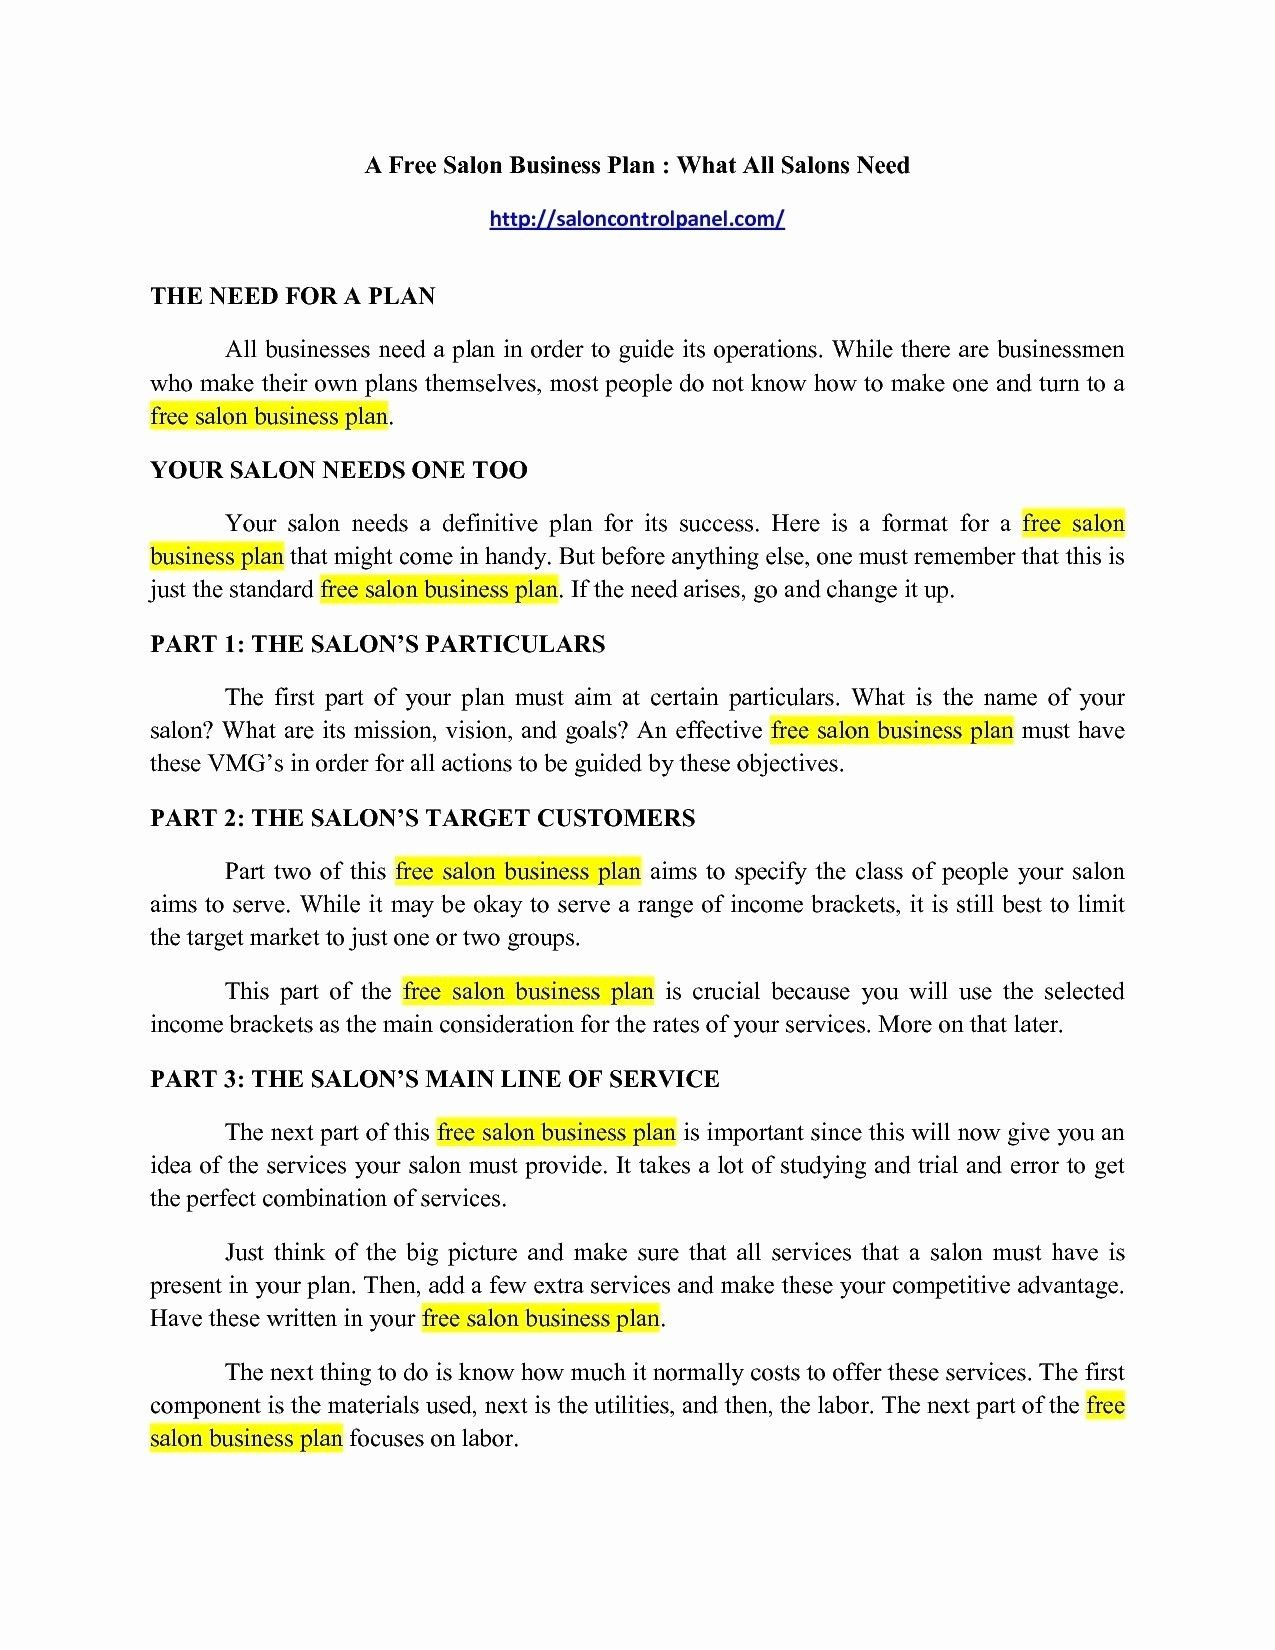 New Day Spa Business Plan Template Hair salon business